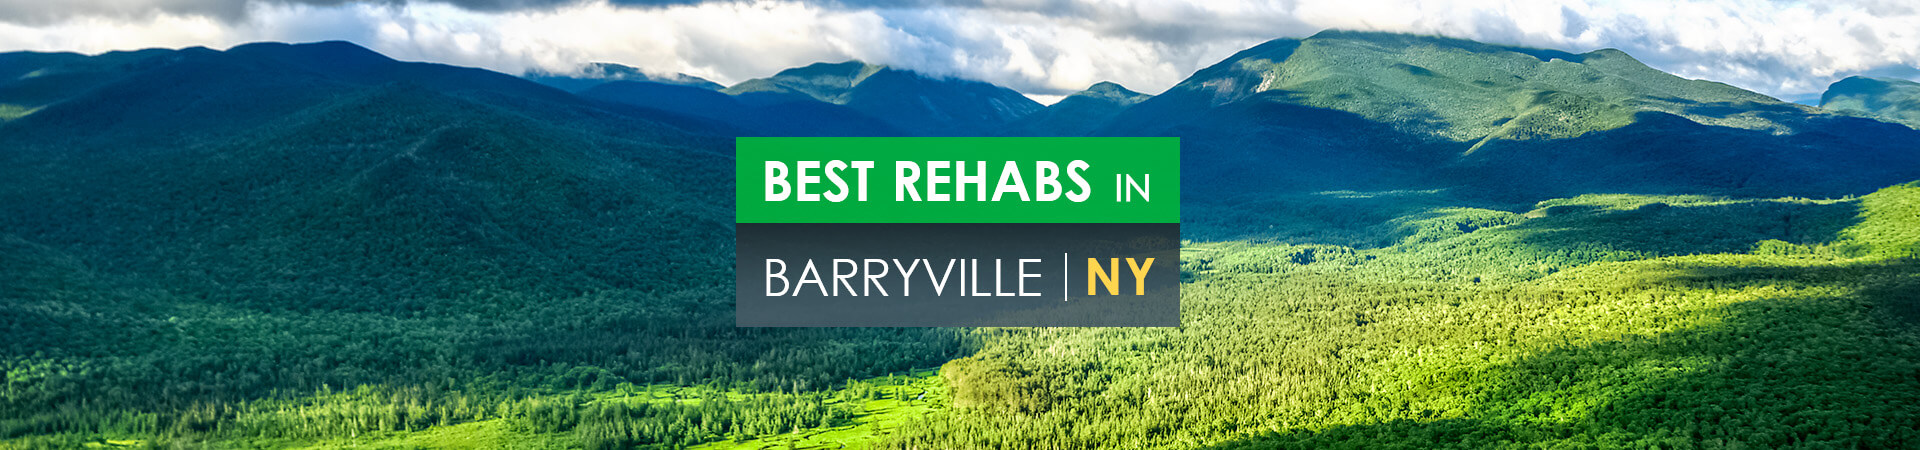 Best rehabs in Barryville, NY